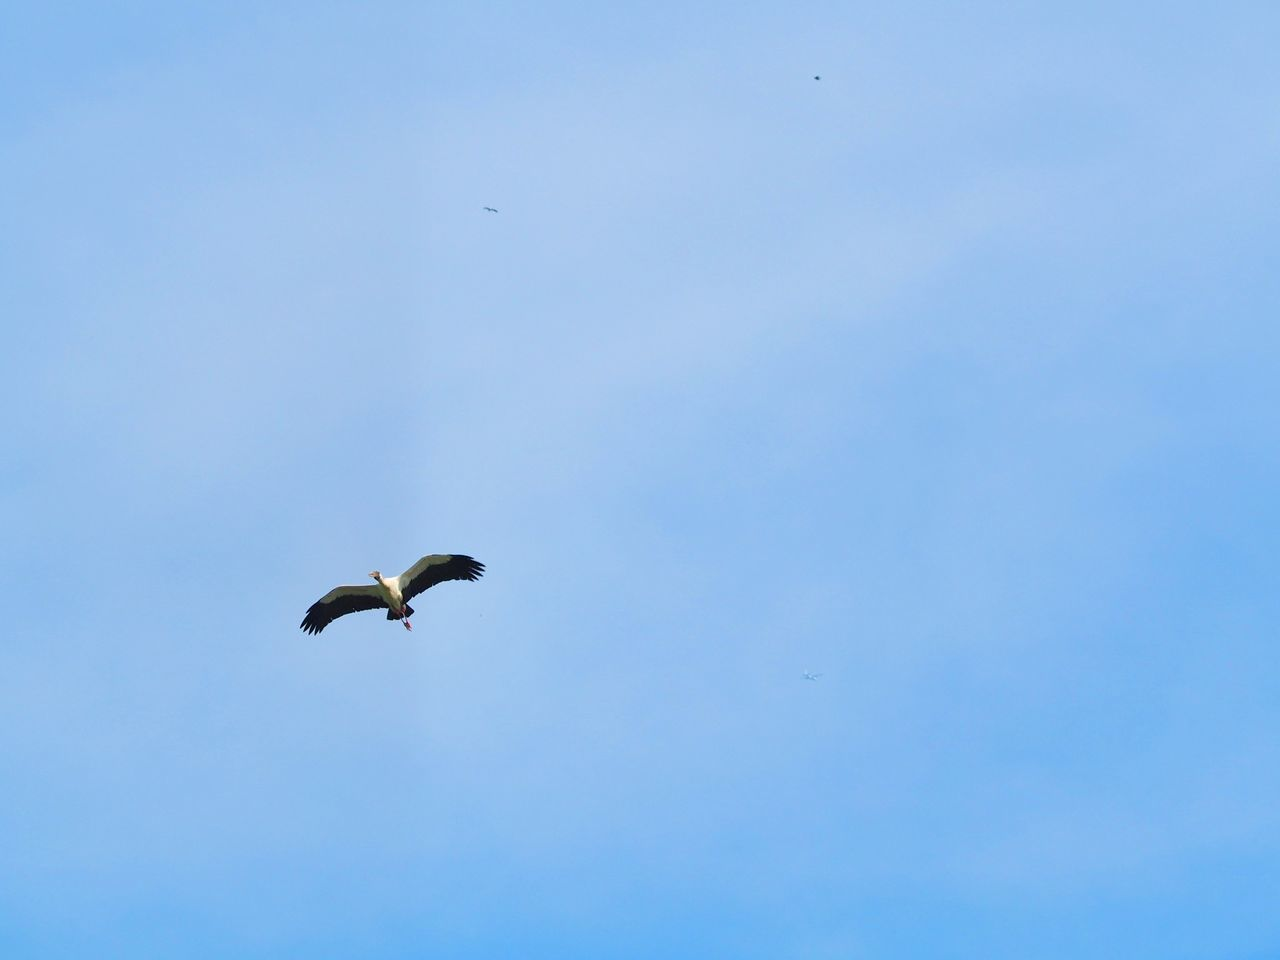 animals in the wild, bird, animal themes, flying, animal wildlife, spread wings, one animal, low angle view, wildlife, mid-air, copy space, outdoors, day, nature, beauty in nature, clear sky, no people, blue, motion, sky